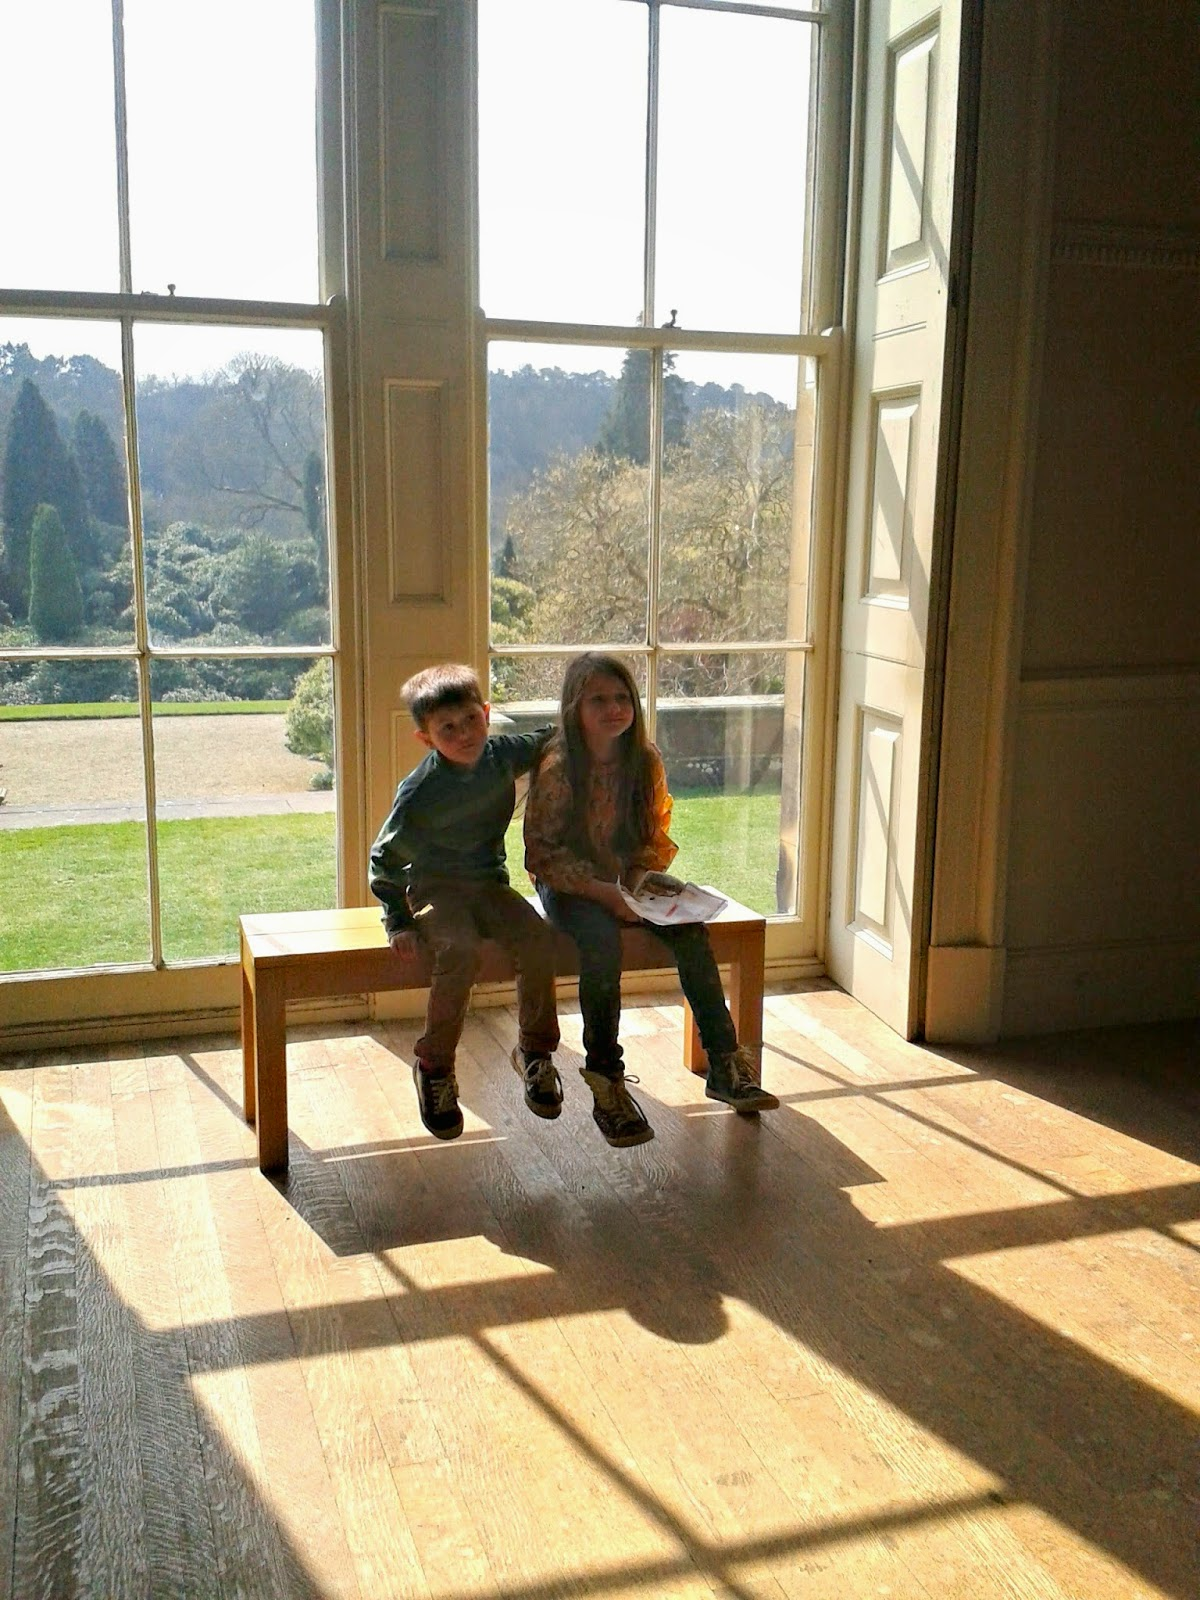 Lucas and Maisie in Belsay Hall.